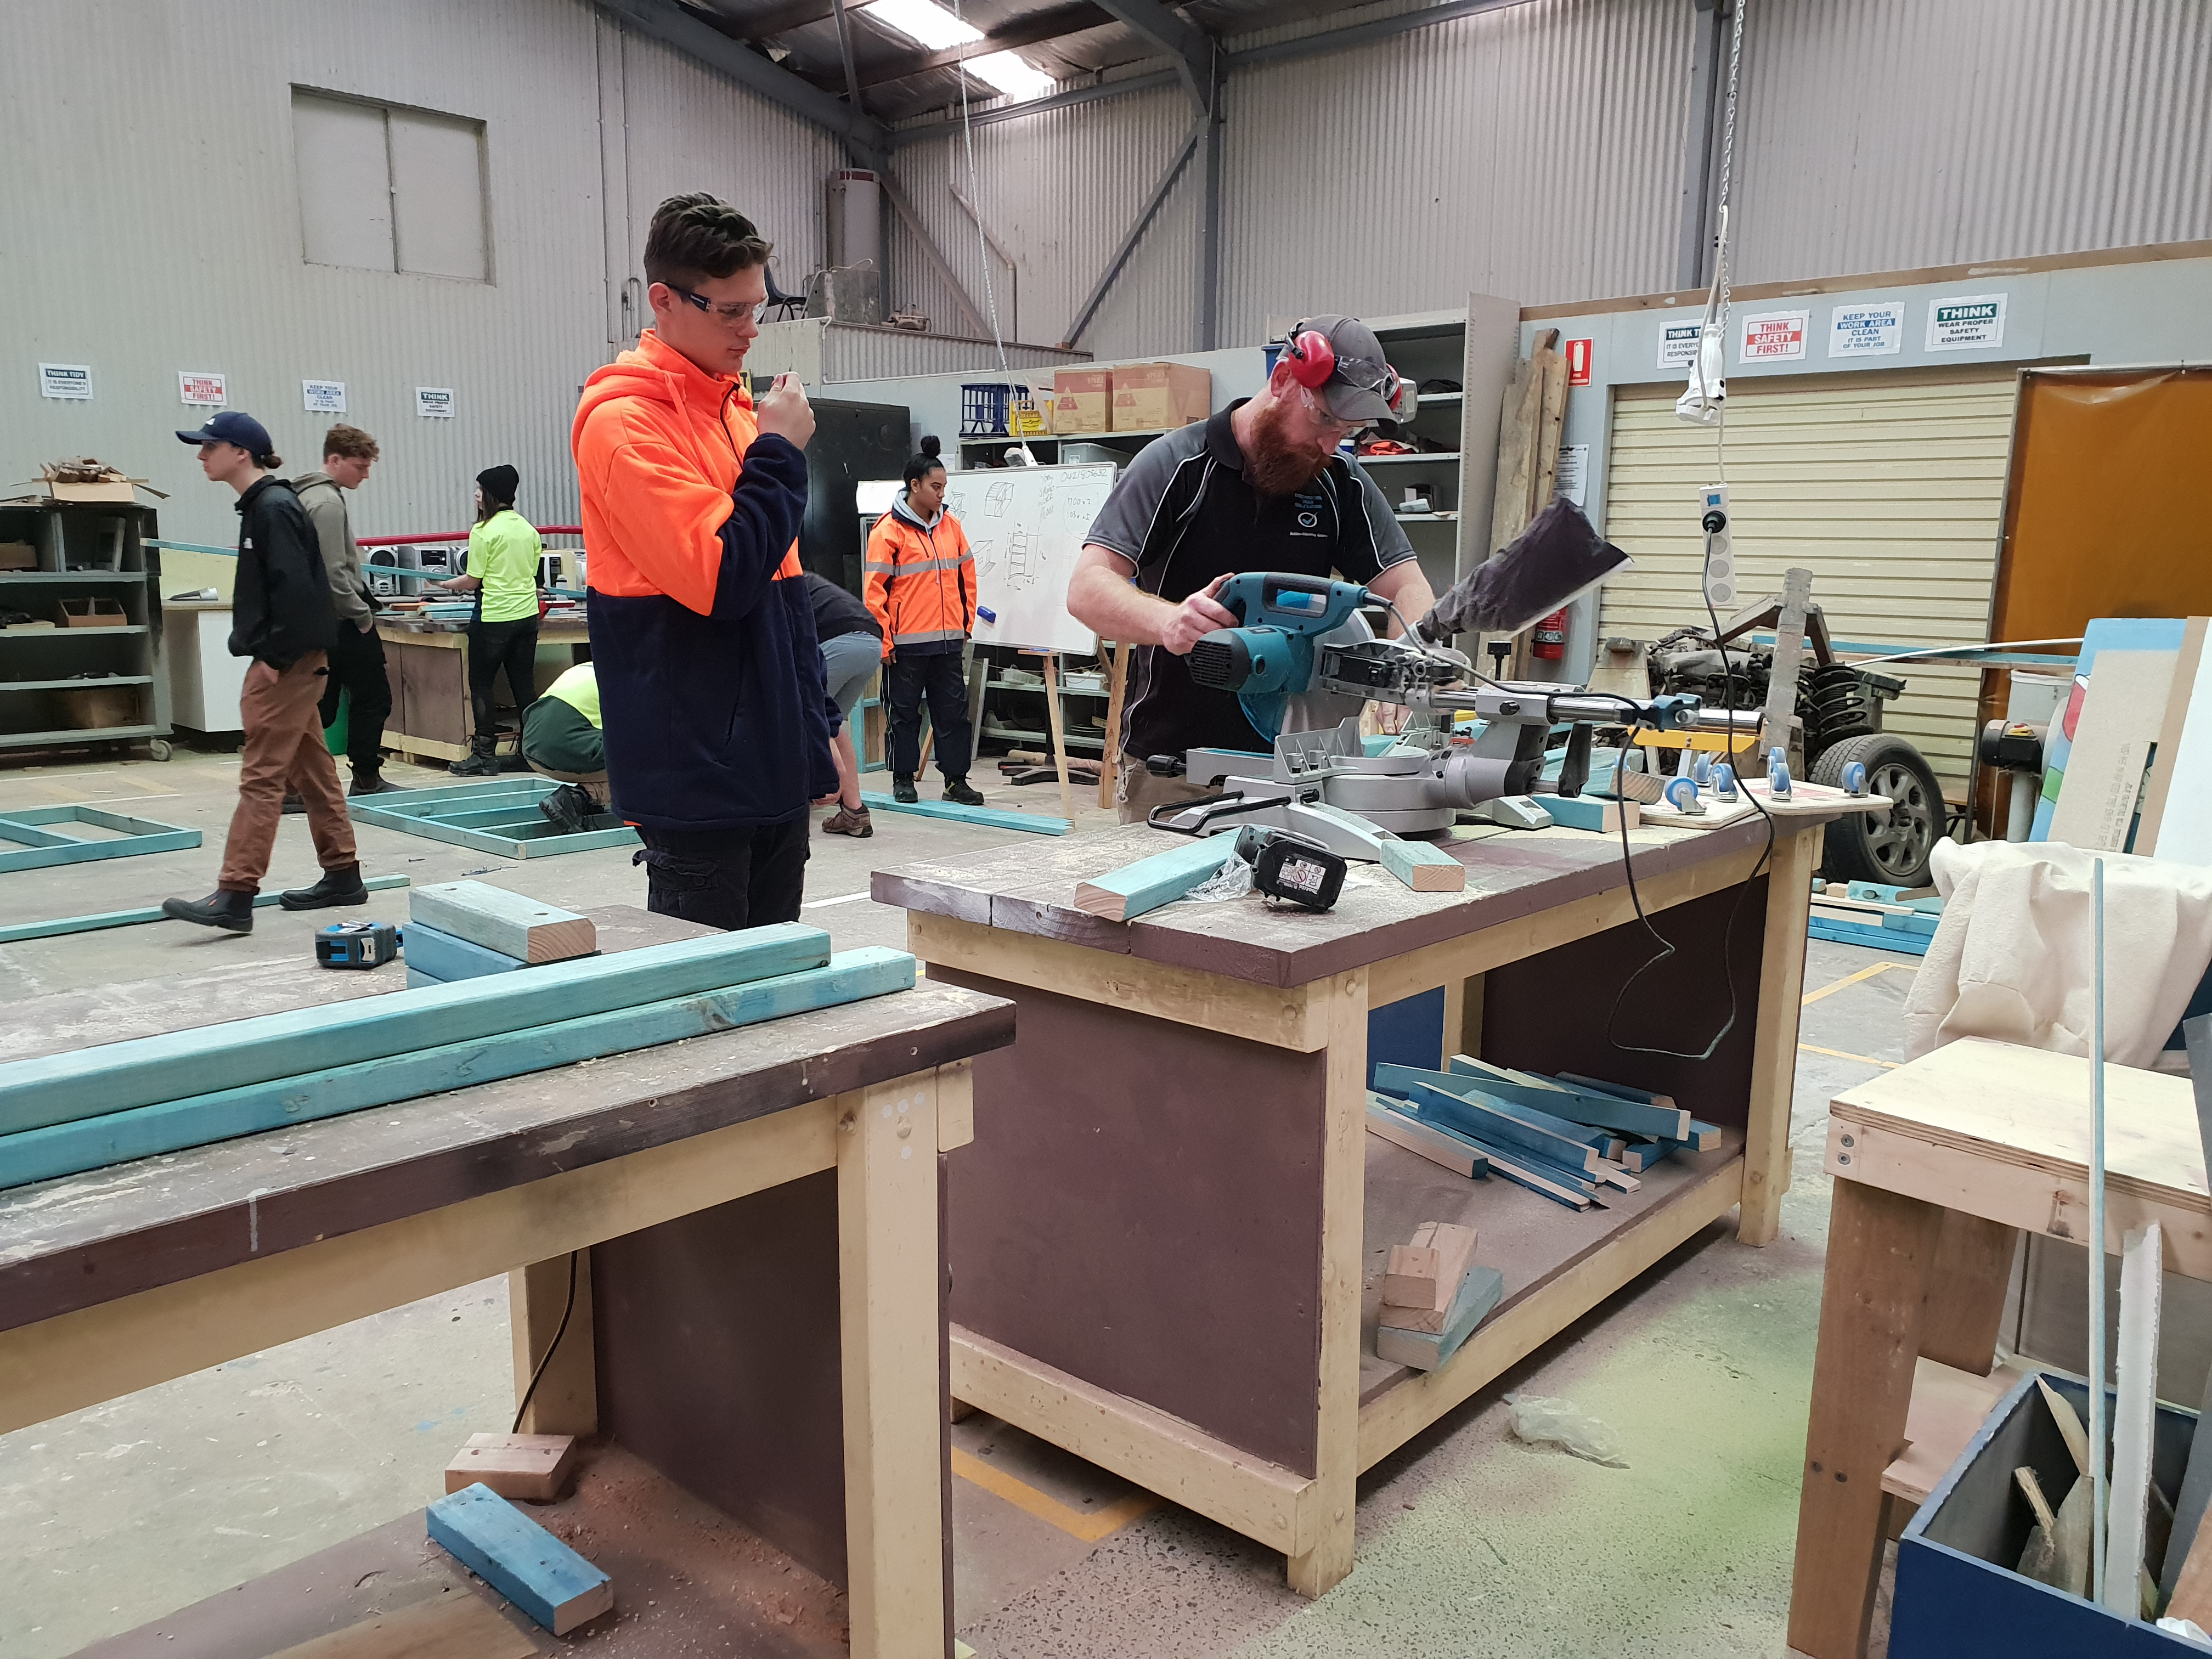 Construction Training Qualifications Central Coast NSW Youth Cultural Training Professional Trade Training Women in Construction Training 39